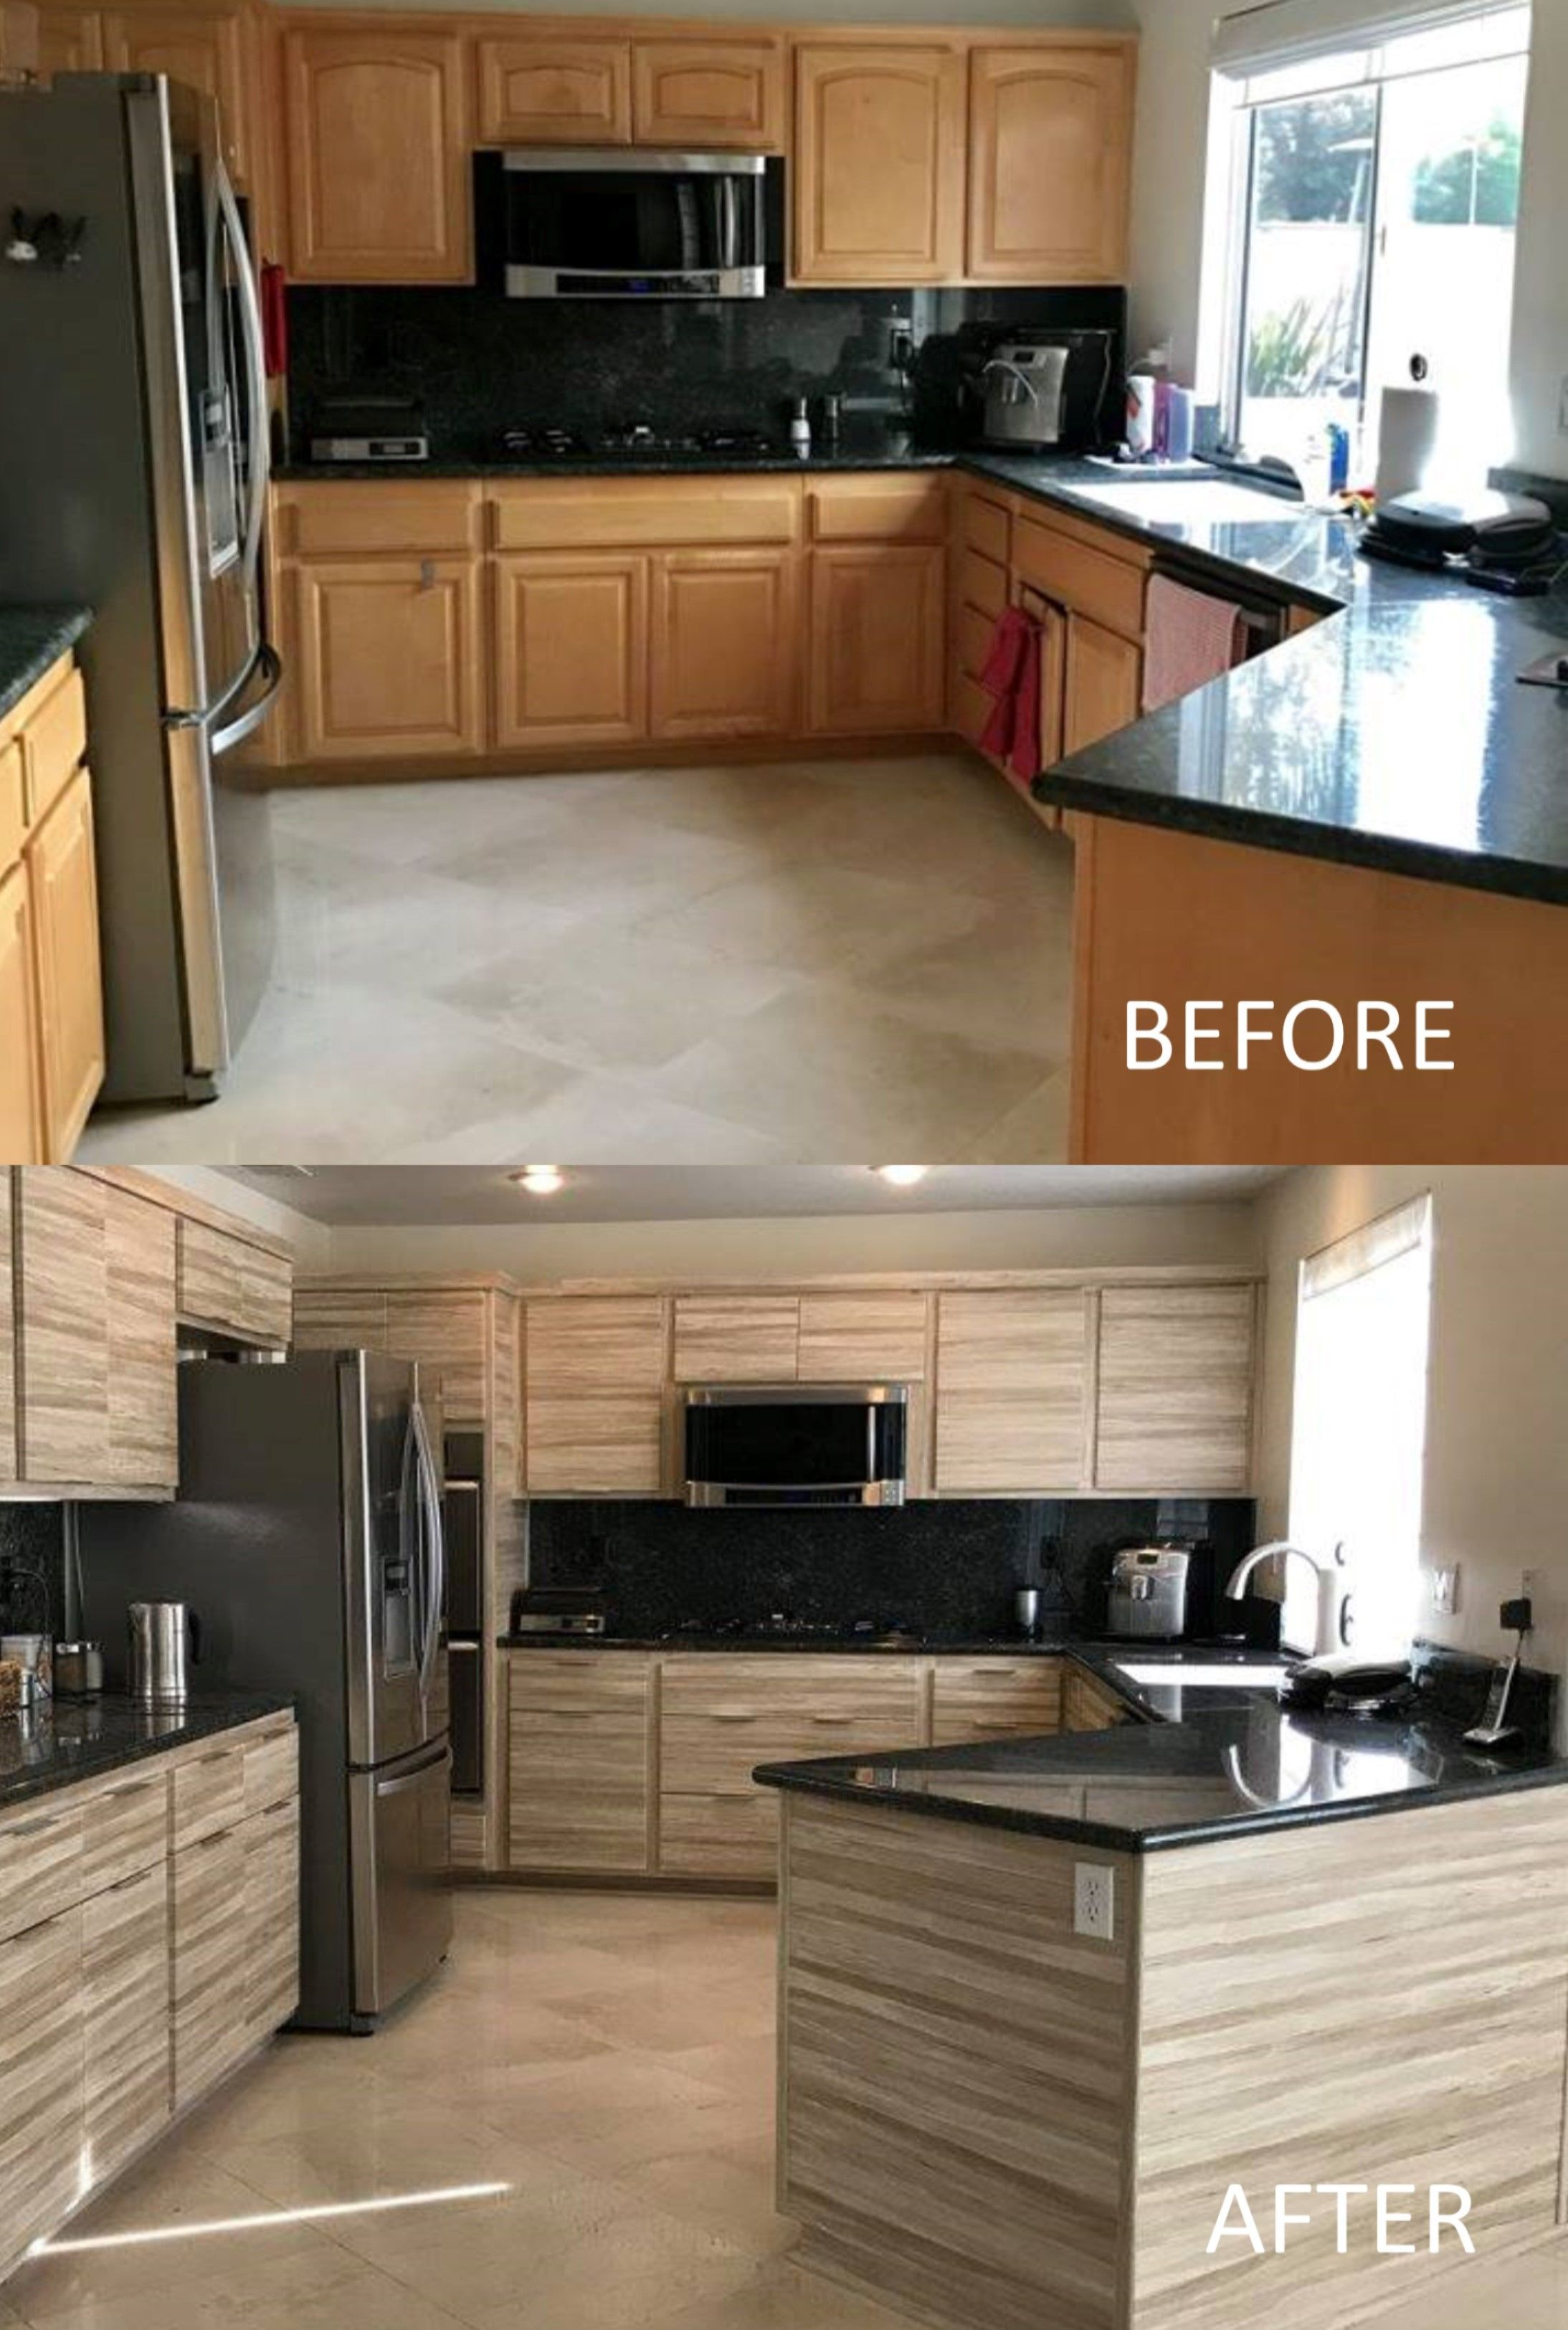 Kitchen Cabinet Reface Before And After Refacing Kitchen Cabinets Diy Refacing Kitchen Cabinets Refinish Kitchen Cabinets